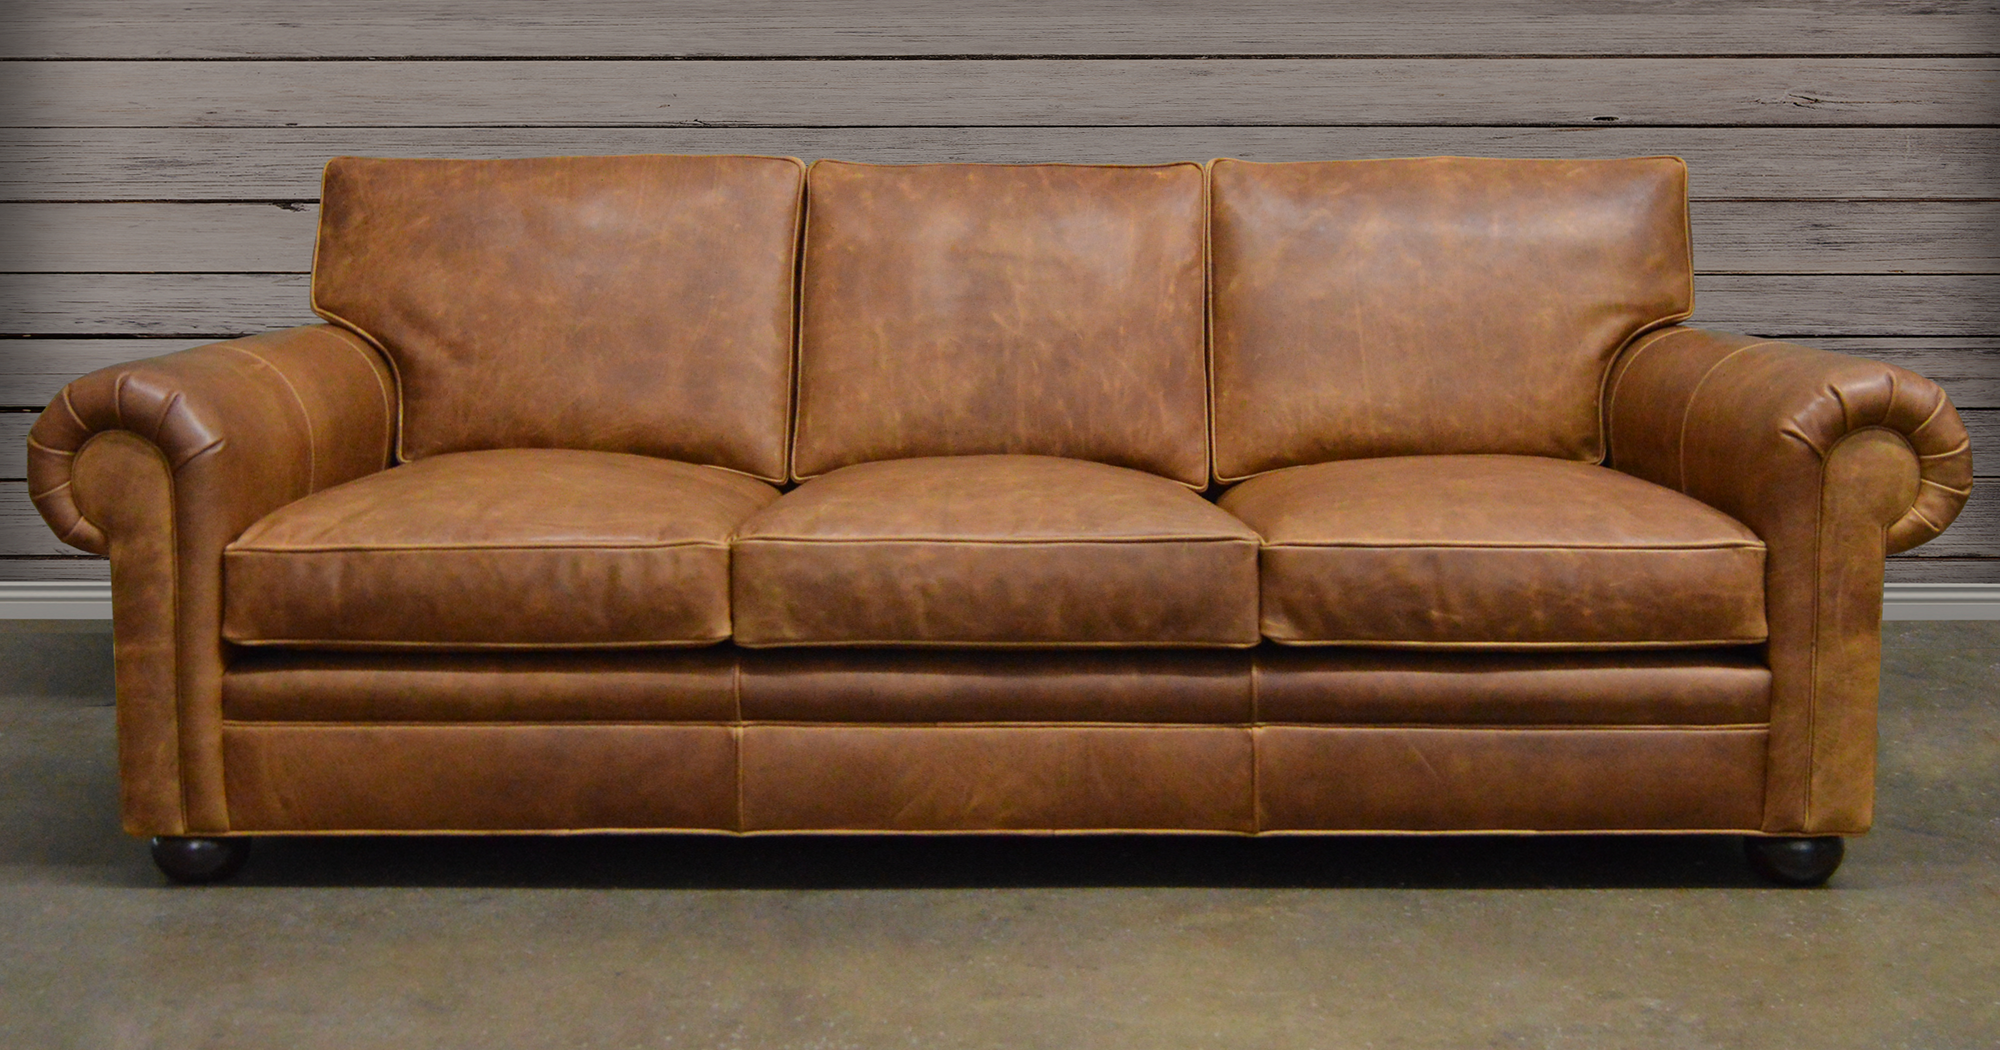 leather furniture langston leather sofa made of italian brentwood brown leather HATRQFM